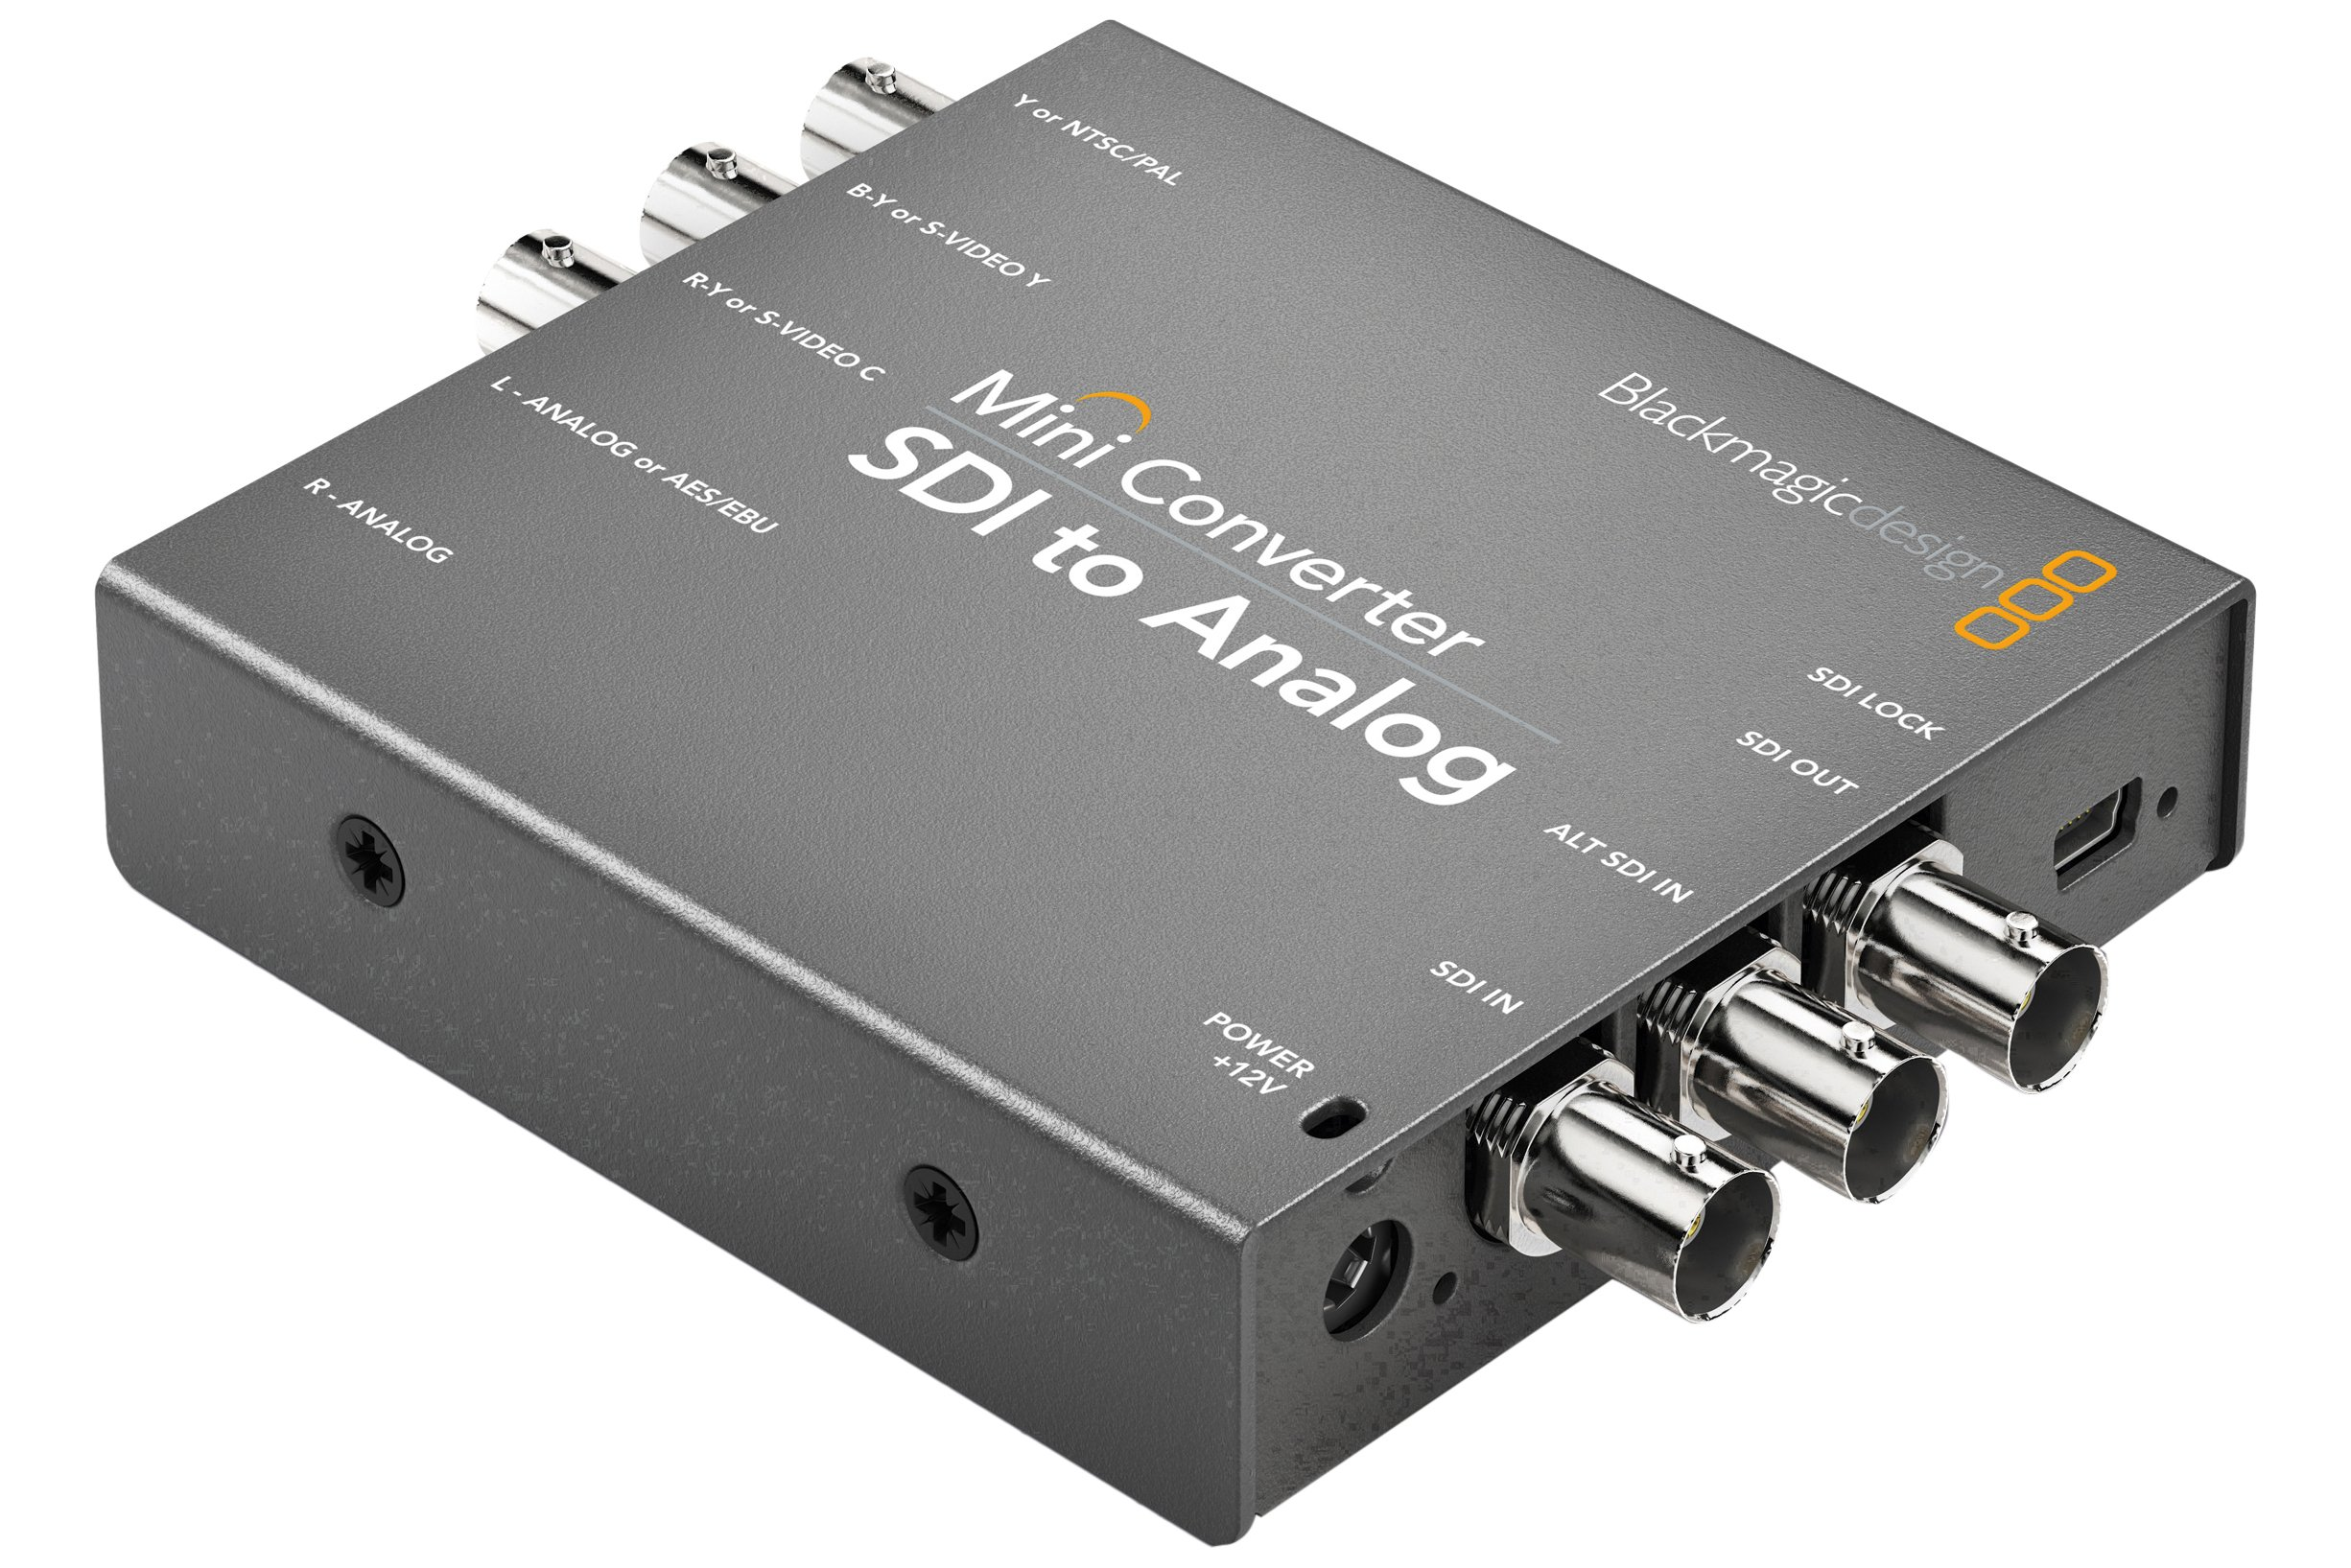 Blackmagic Design Mini Converter SDI to Analog with Embedded Audio